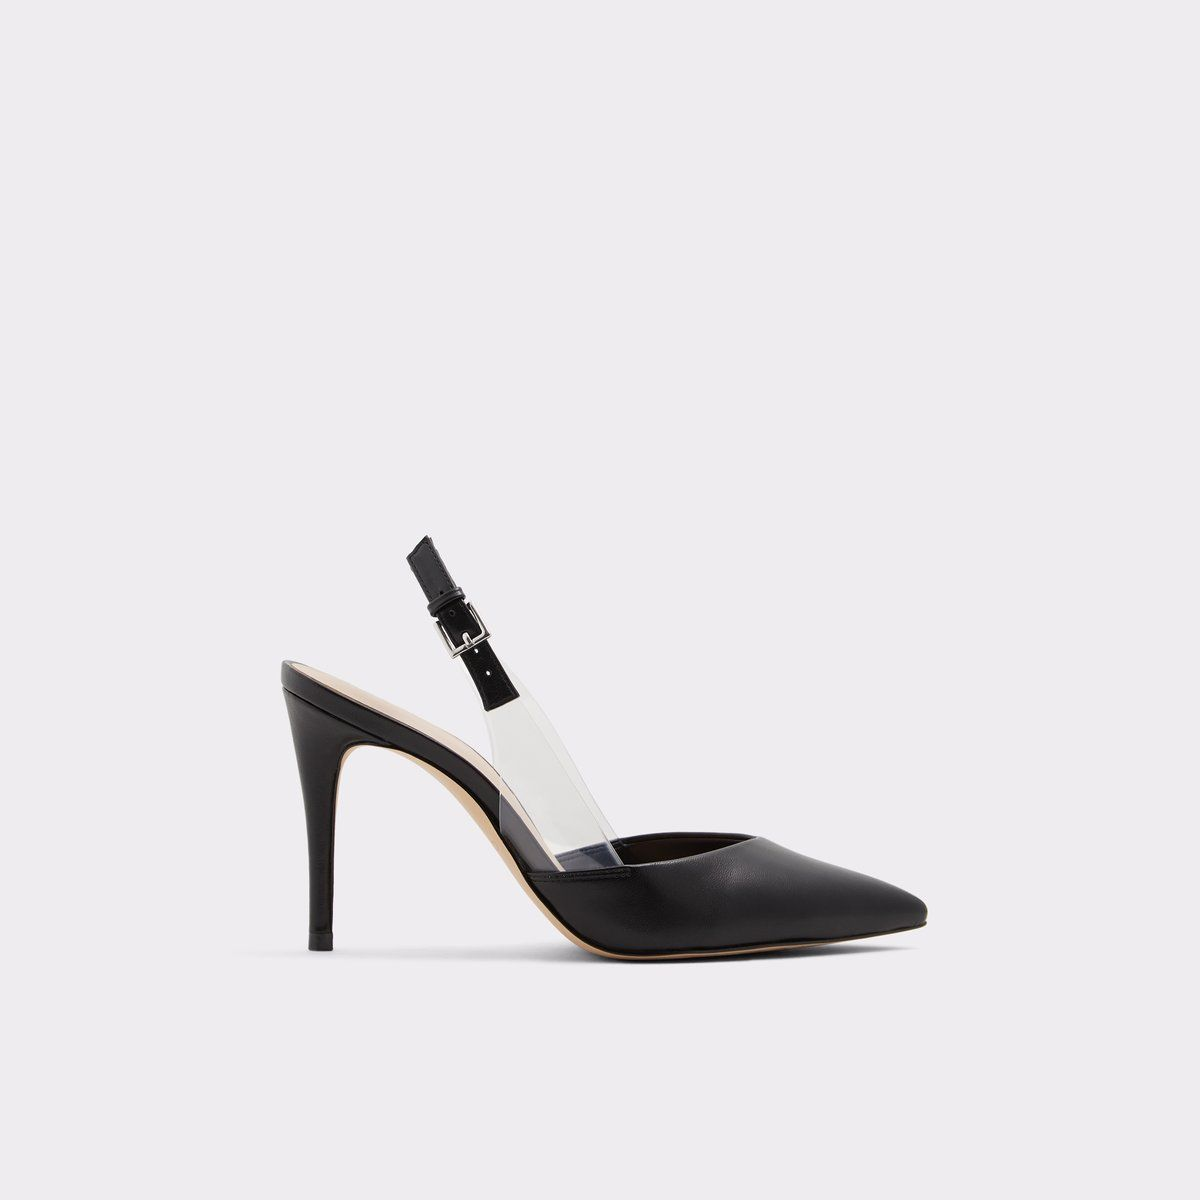 Culia A Go To Slingback High Heel For Fun And Sophisticated Look You Ll Fall In Love For Its Bold Design And Memorable Eye Heels Womens Heels Heels Shopping